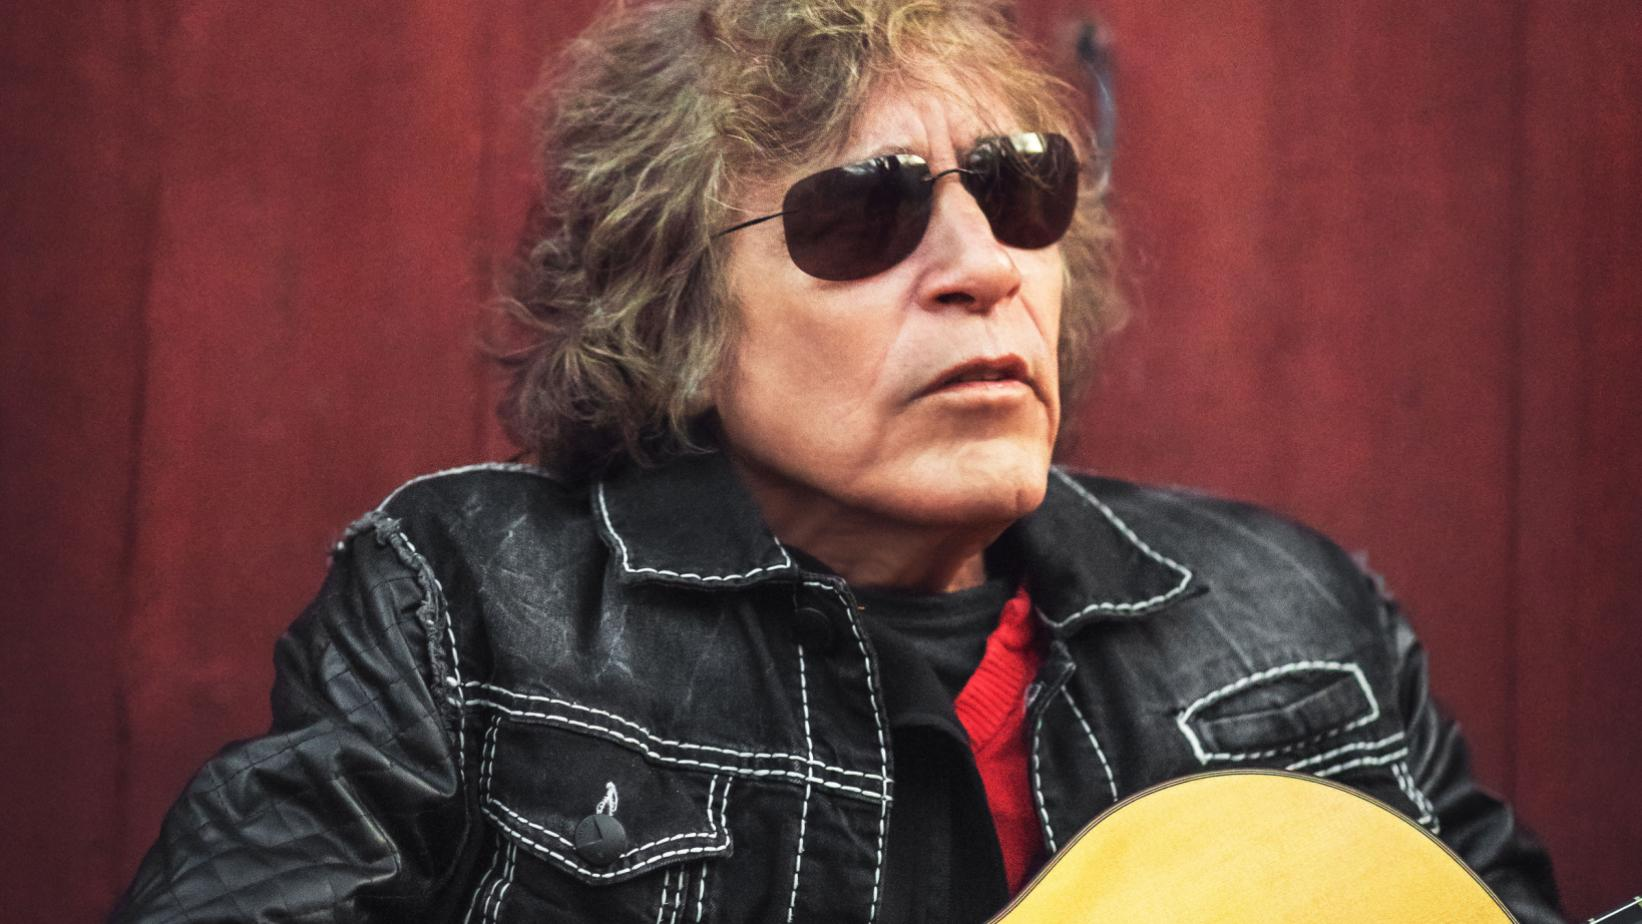 Jose Feliciano Phone number, Email Id, Fanmail, Instagram, Tiktok, and Contact Details